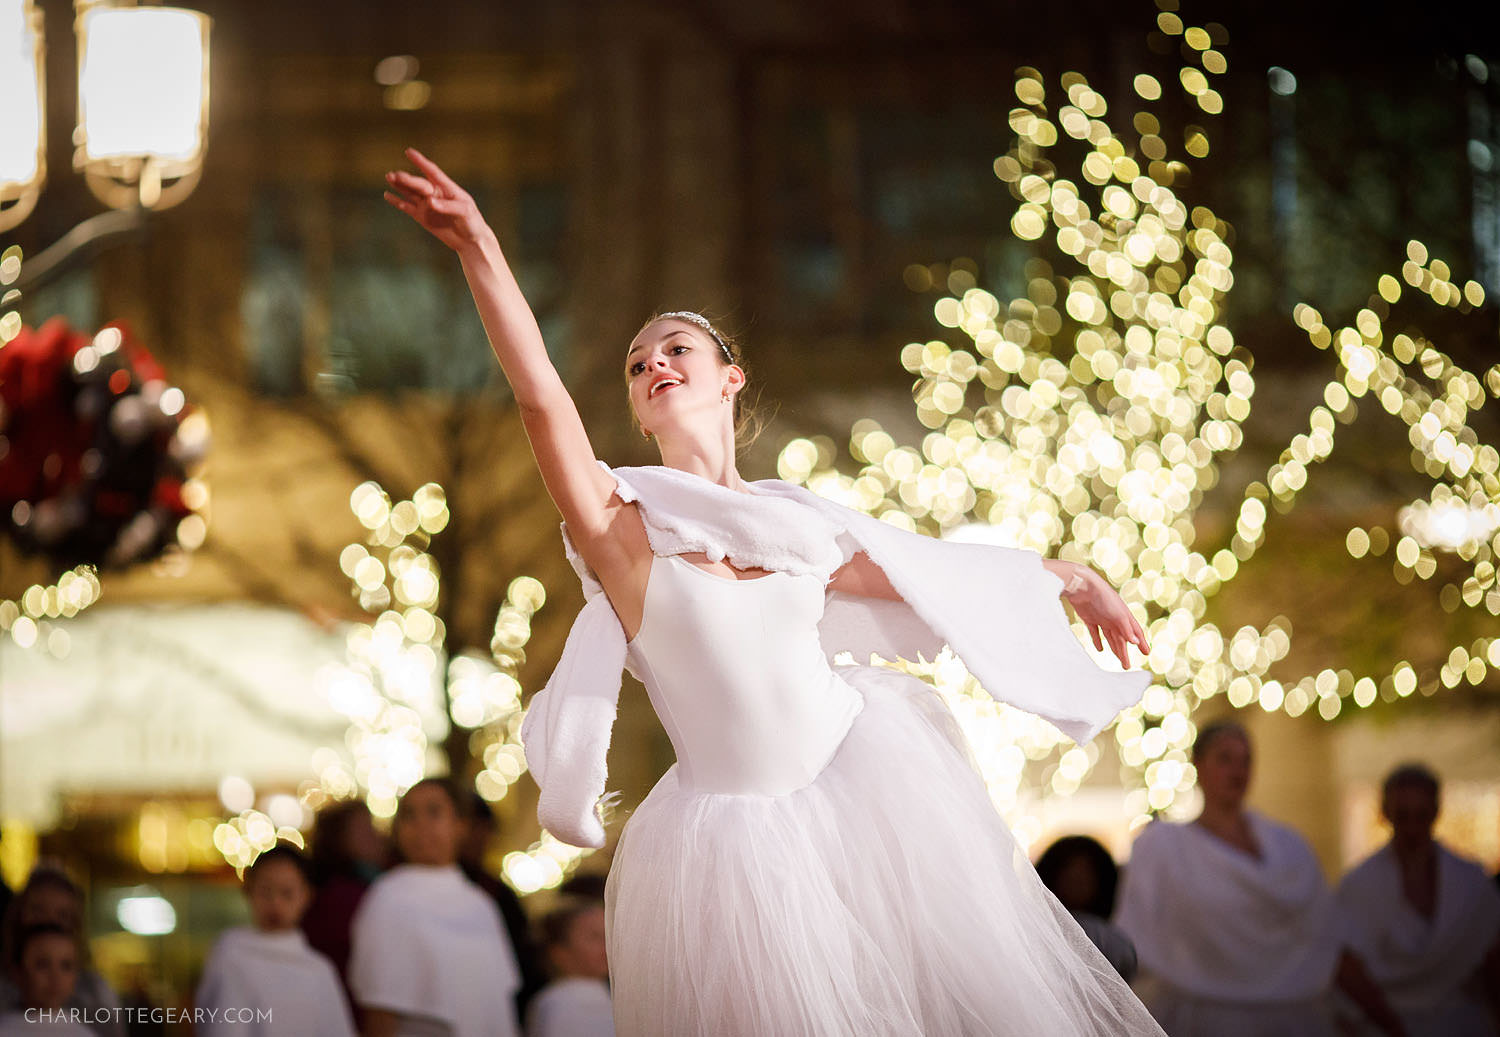 Ballet dancer at Reston Town Center's tree lighting ceremony (Reston, Virginia)